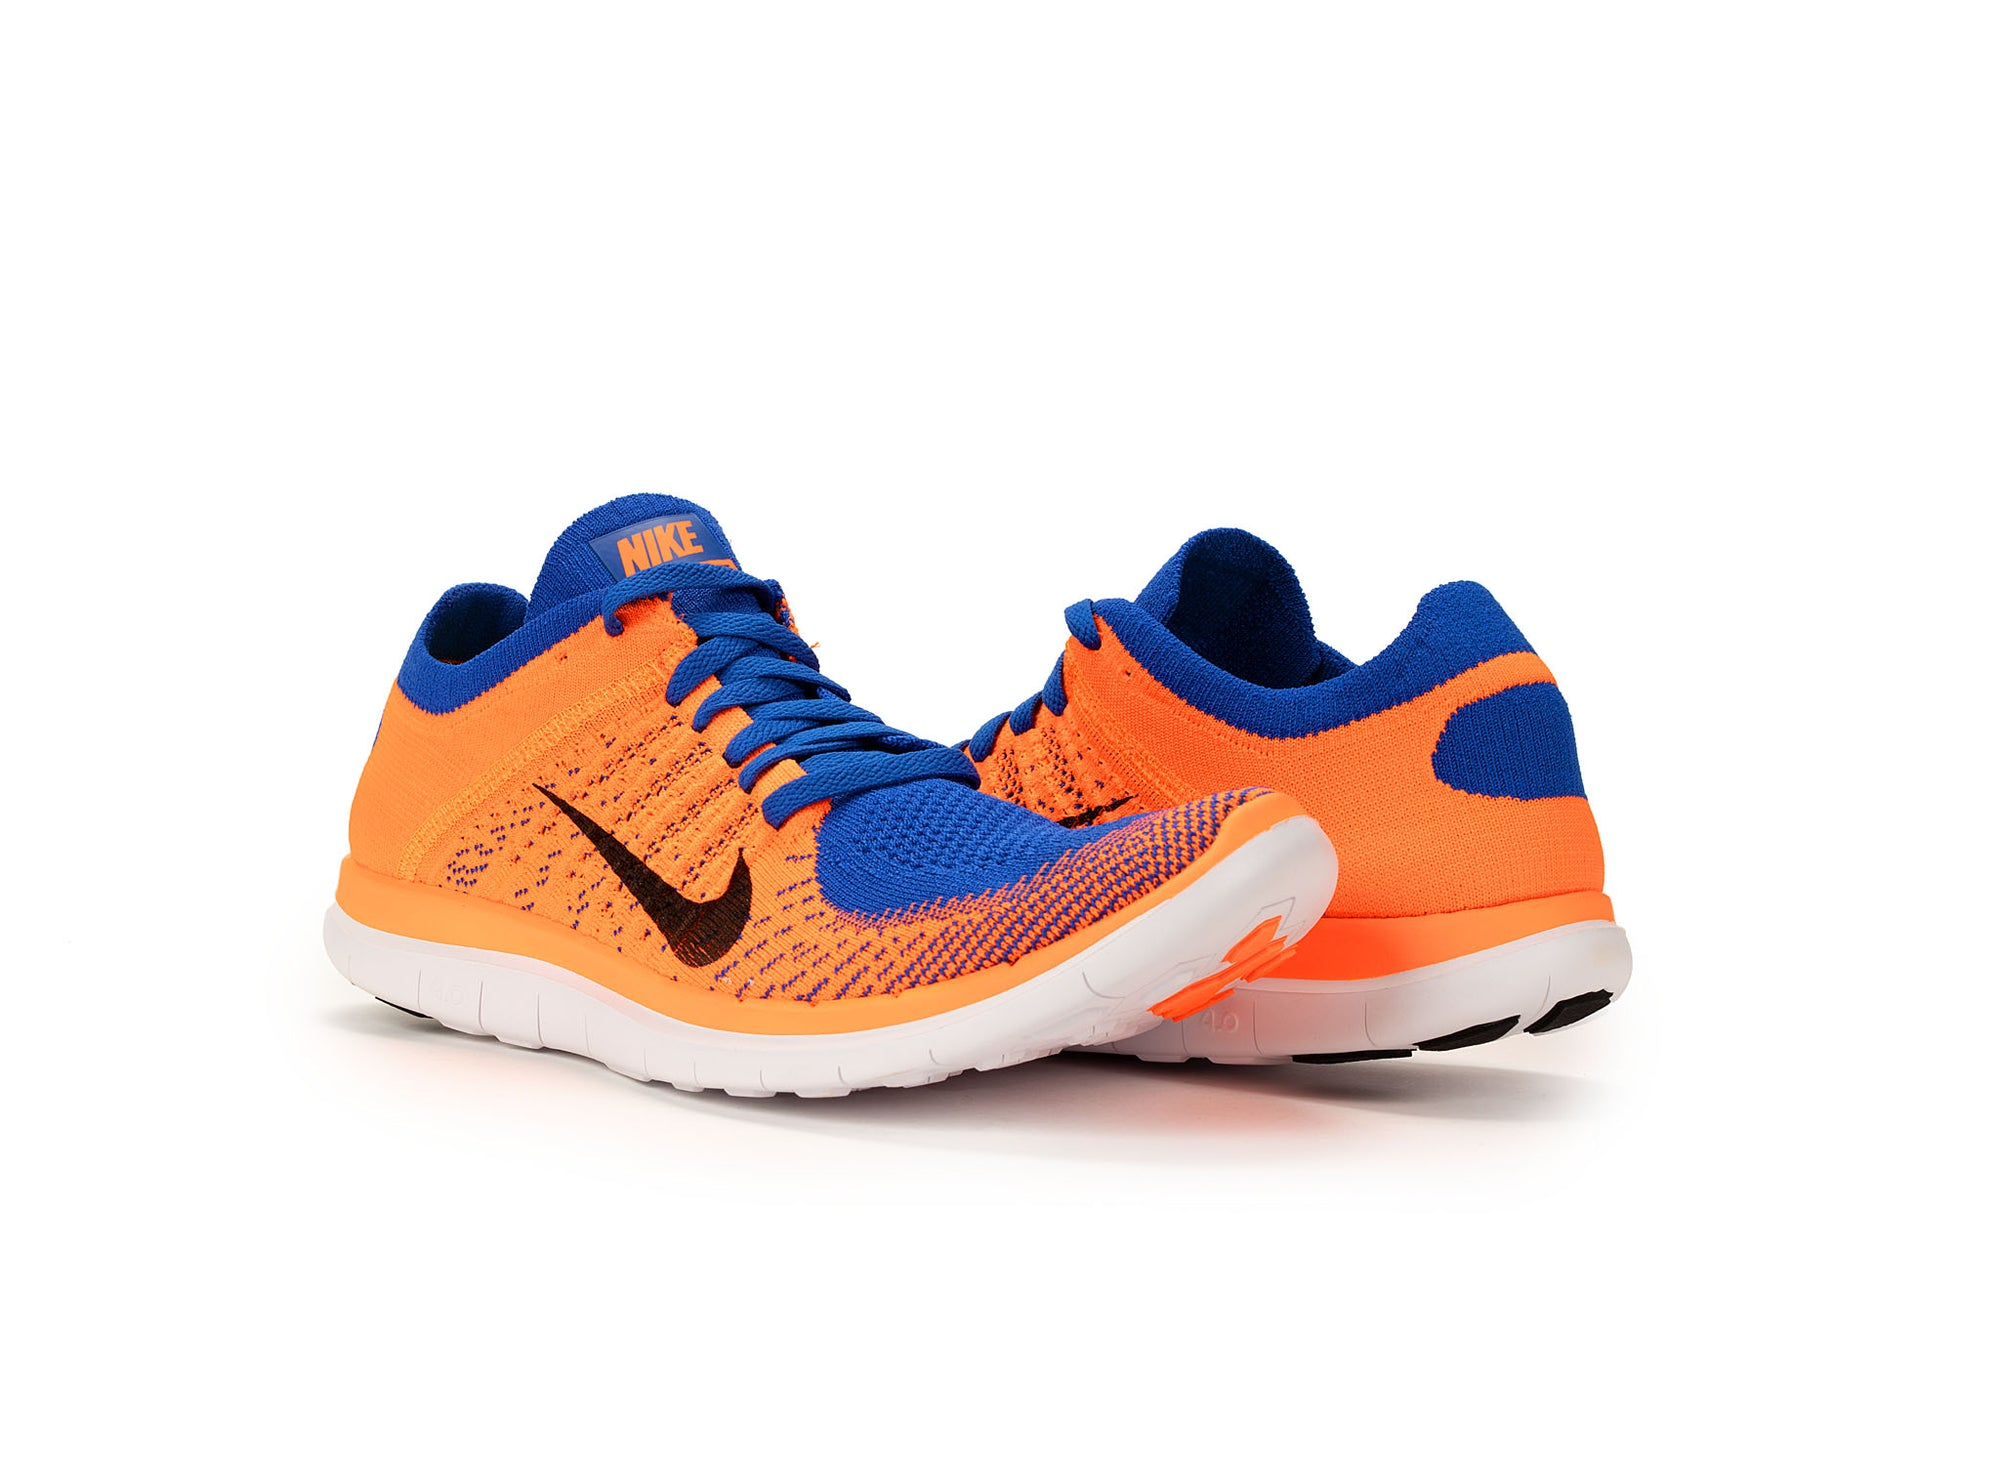 Men's Nike Free 4.0 Flyknit Running Shoes Availability: Out of stock $120.00